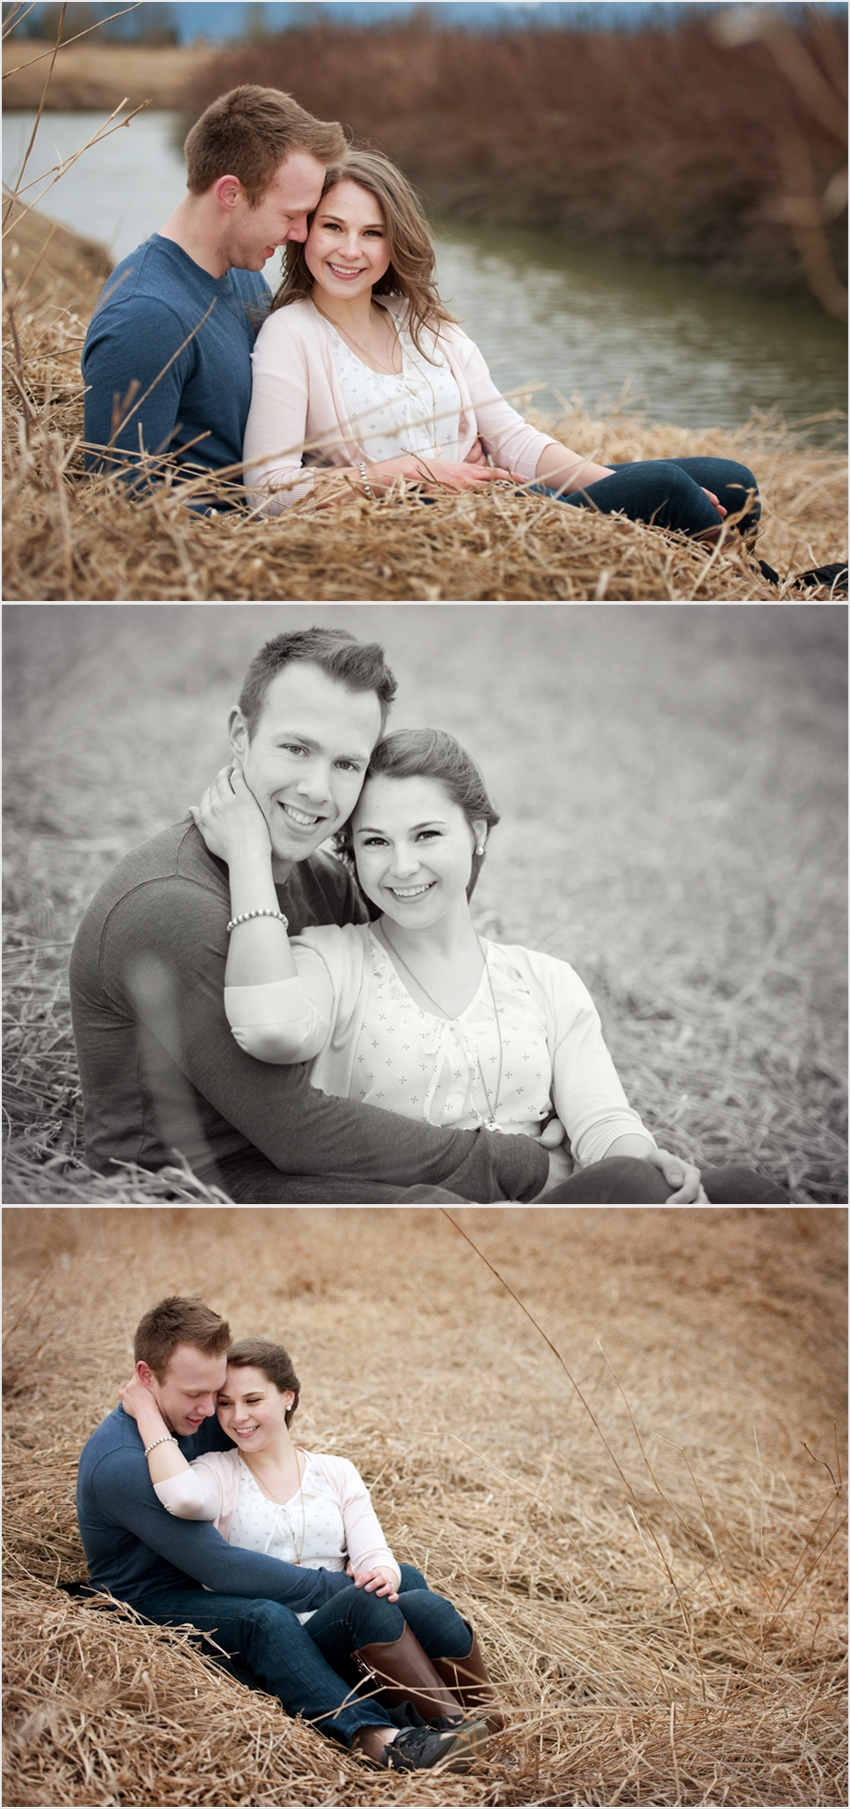 Cailey & Joel - Abbotsford Engagement Photographer